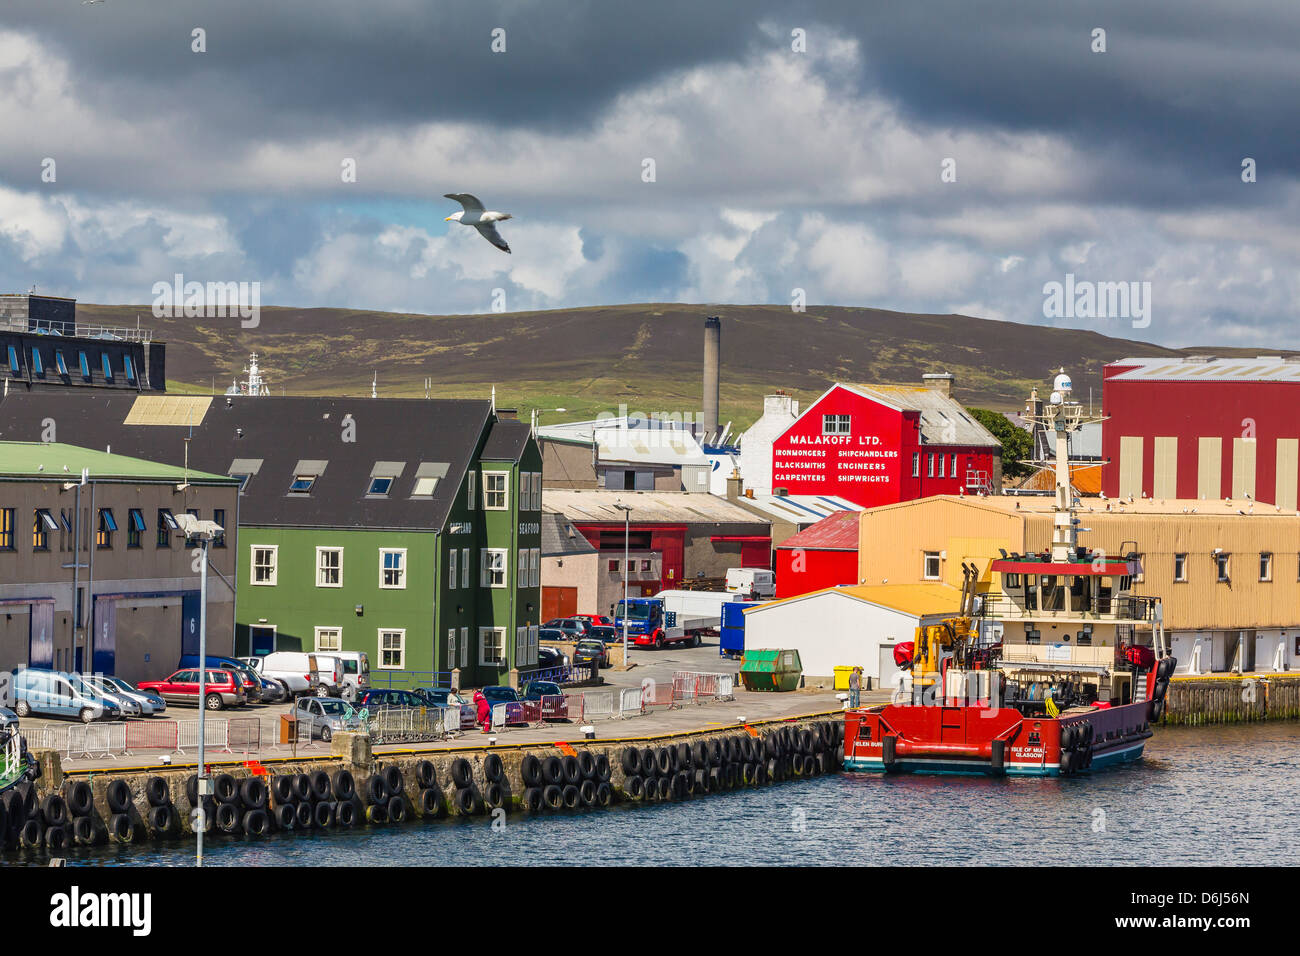 Views of the port of Lerwick, Shetland Islands, Scotland, United Kingdom, Europe - Stock Image